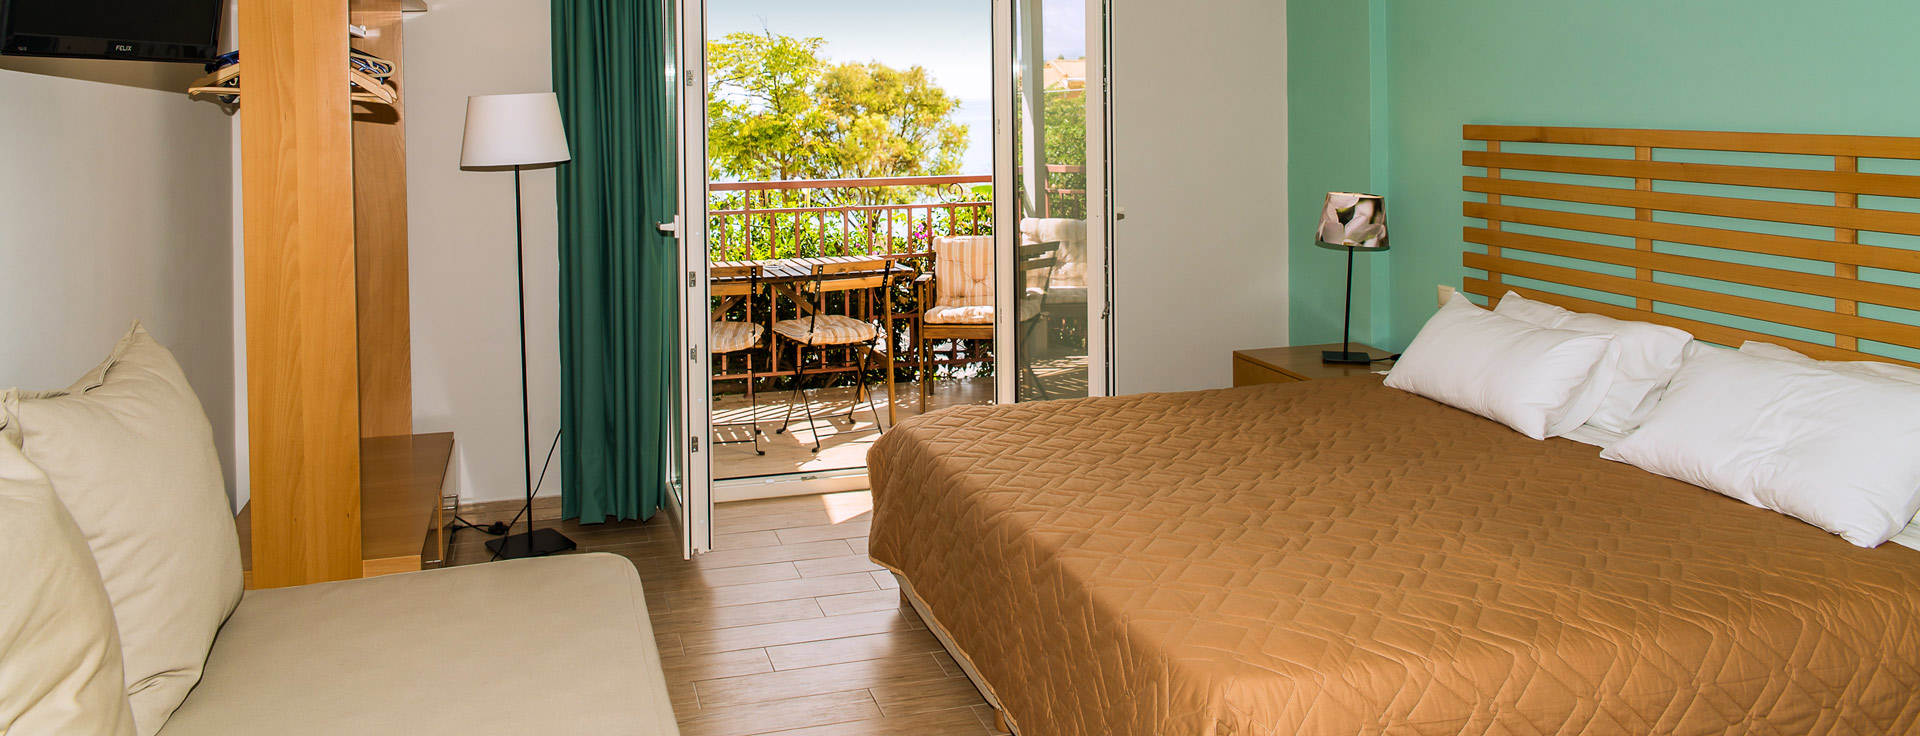 Superior Studio at Lemonia Accommodations for 3 guests with seaview terrace